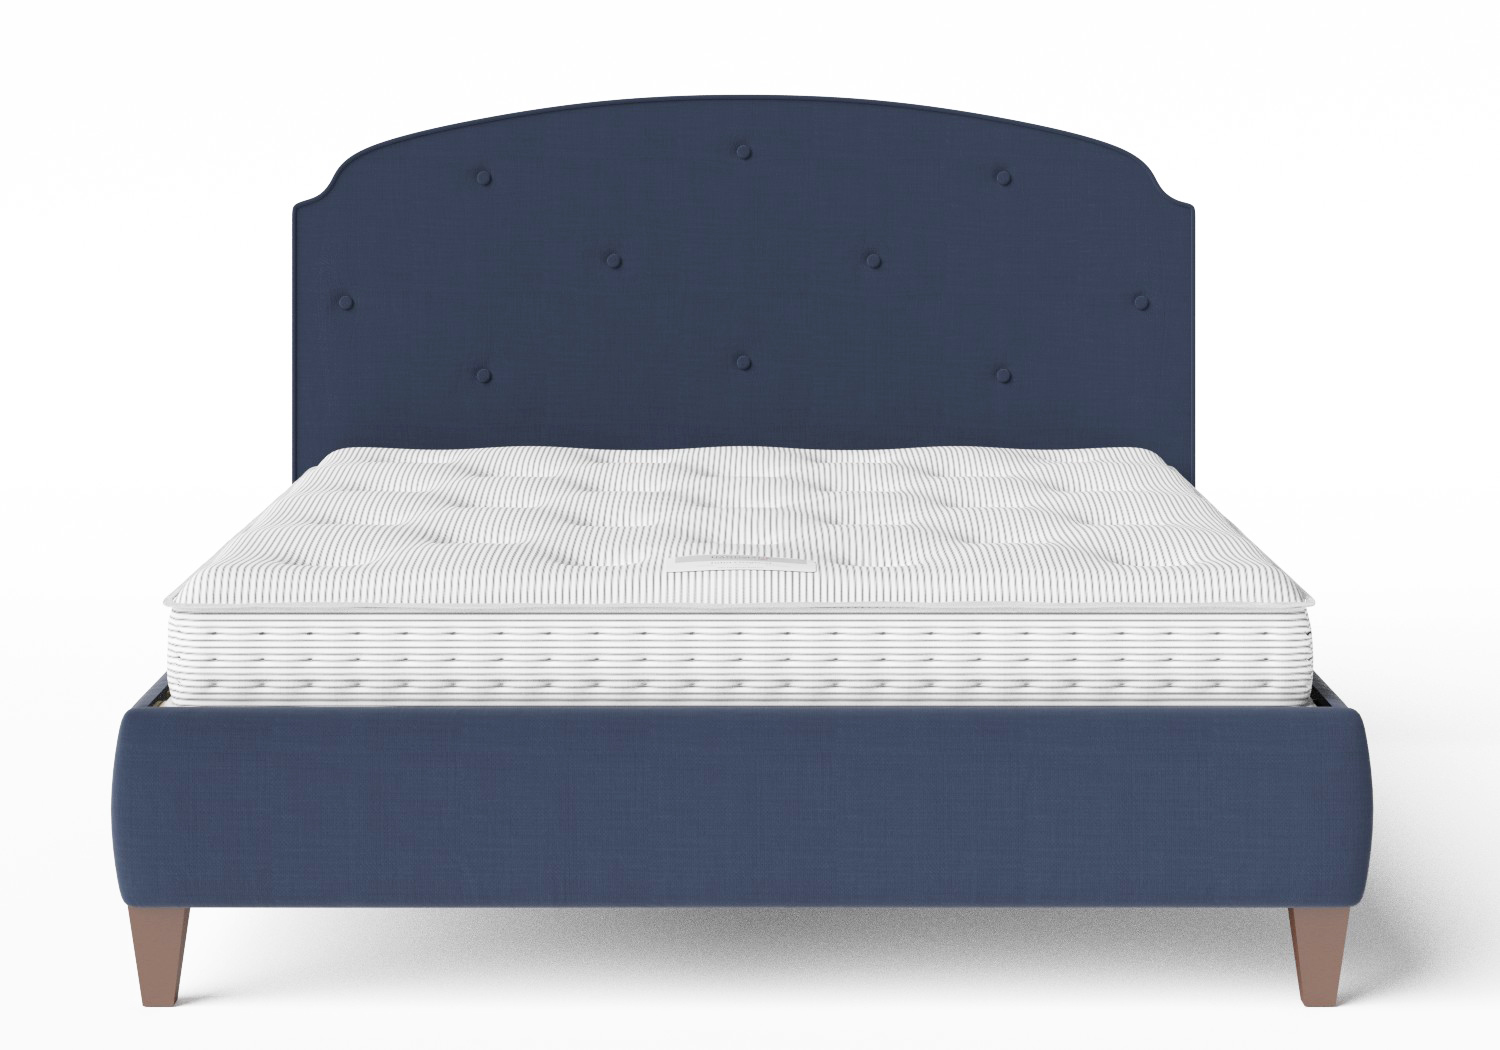 Lide Upholstered Bed in Navy fabric with buttoning shown with Juno 1 mattress